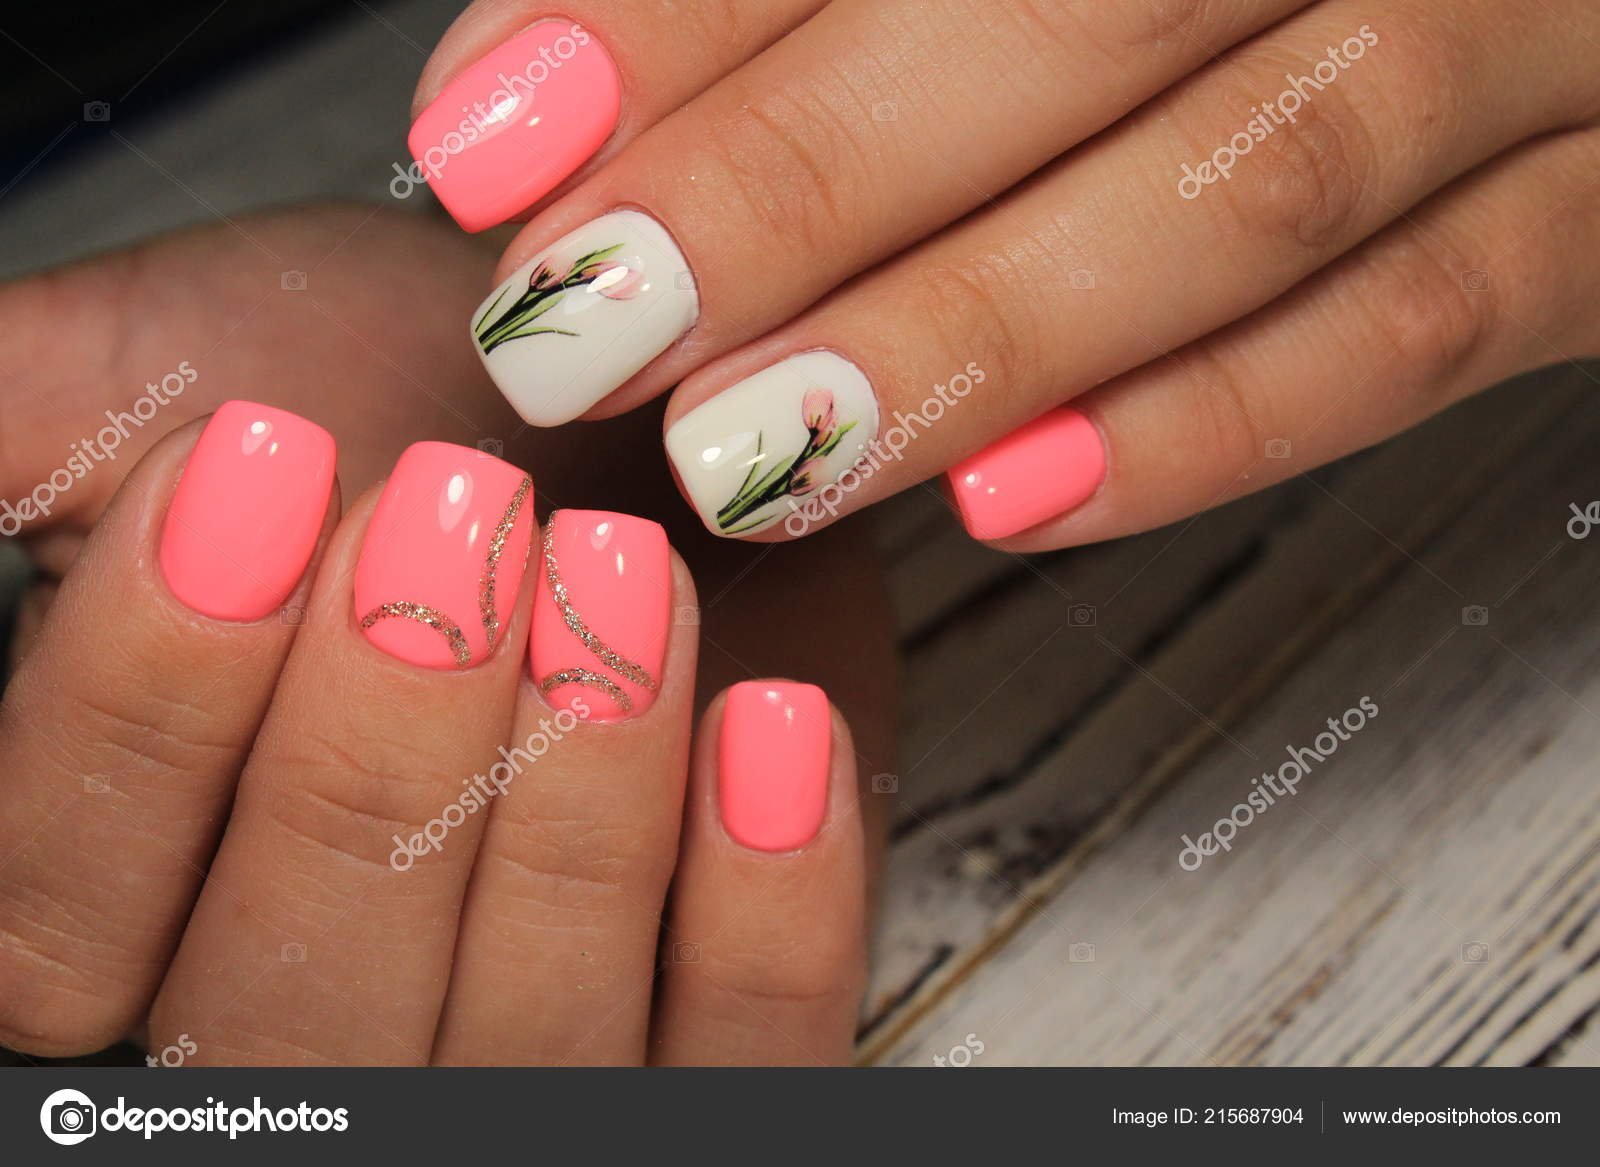 Youth Manicure Design Best Nails Gel Varnish Stock Photo